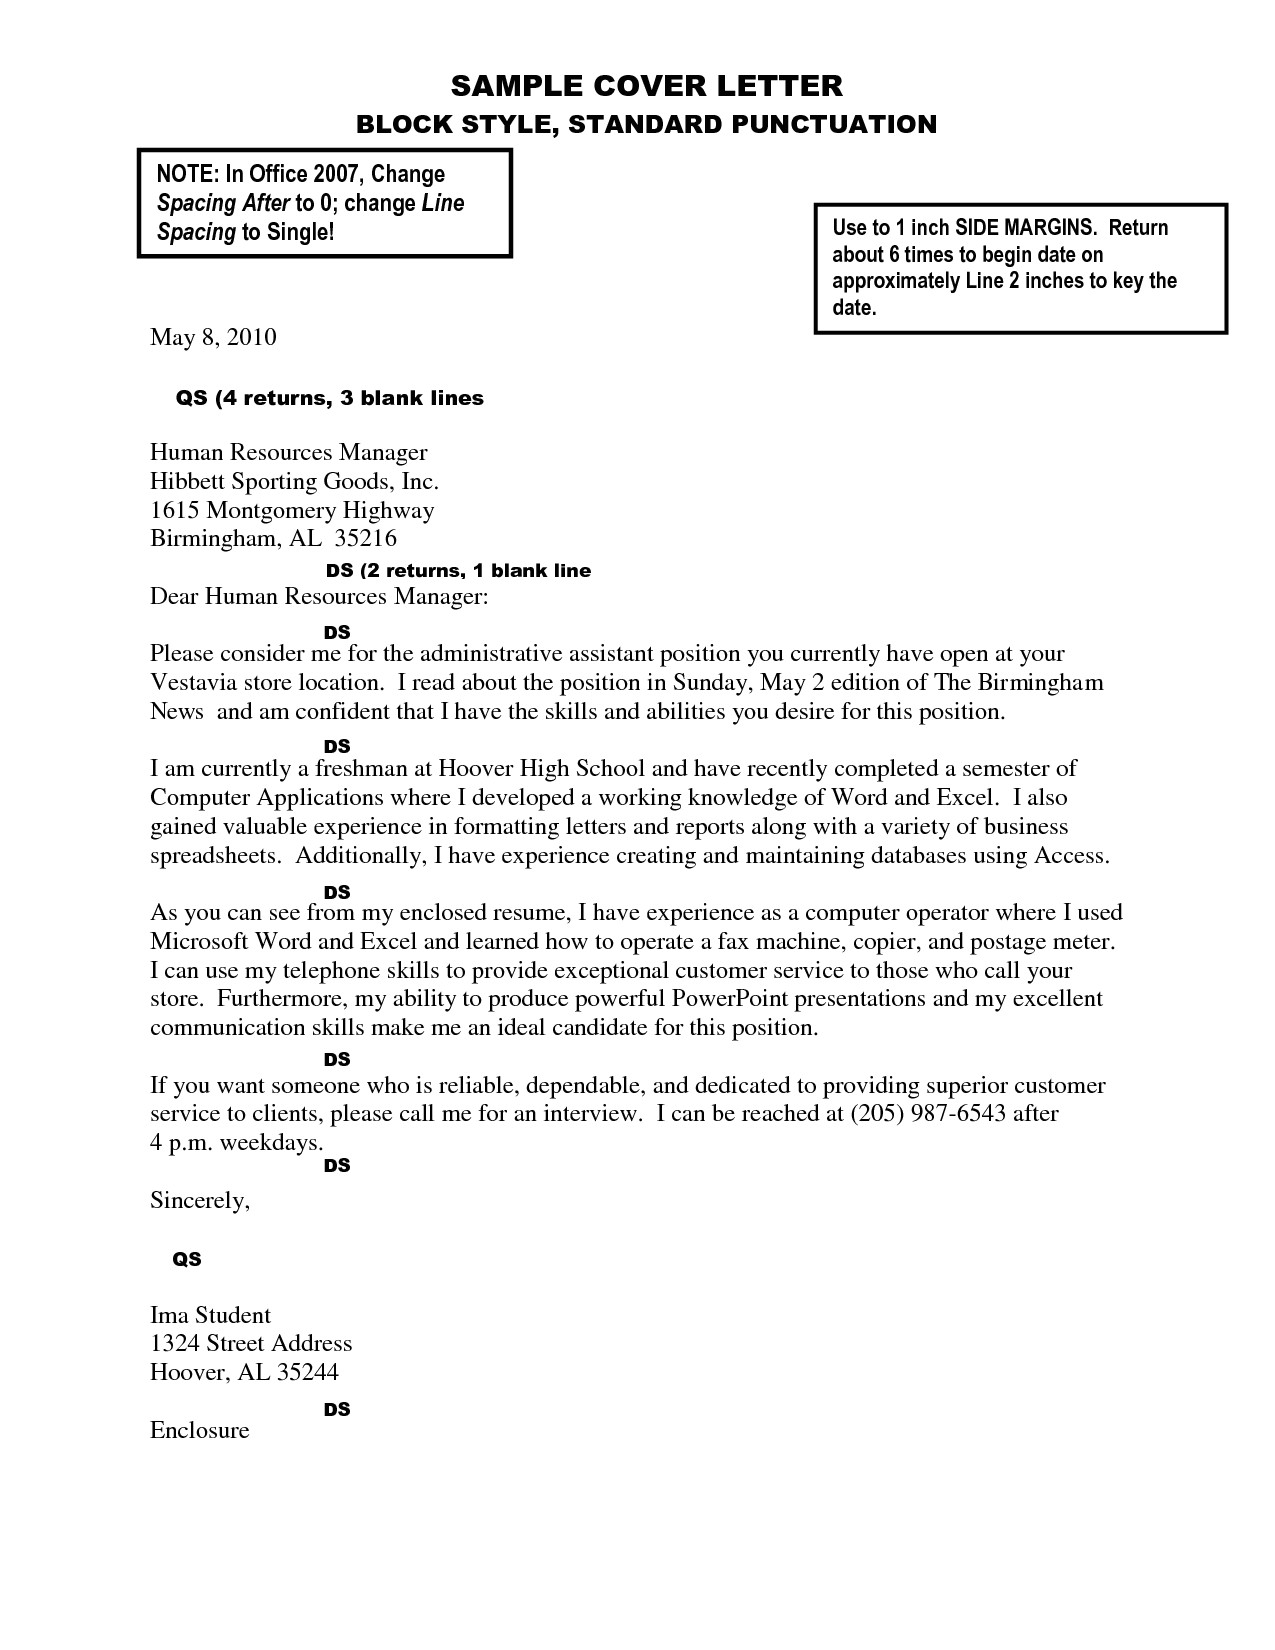 Proper Spacing for A Cover Letter Cover Letter format Spacing Best Template Collection